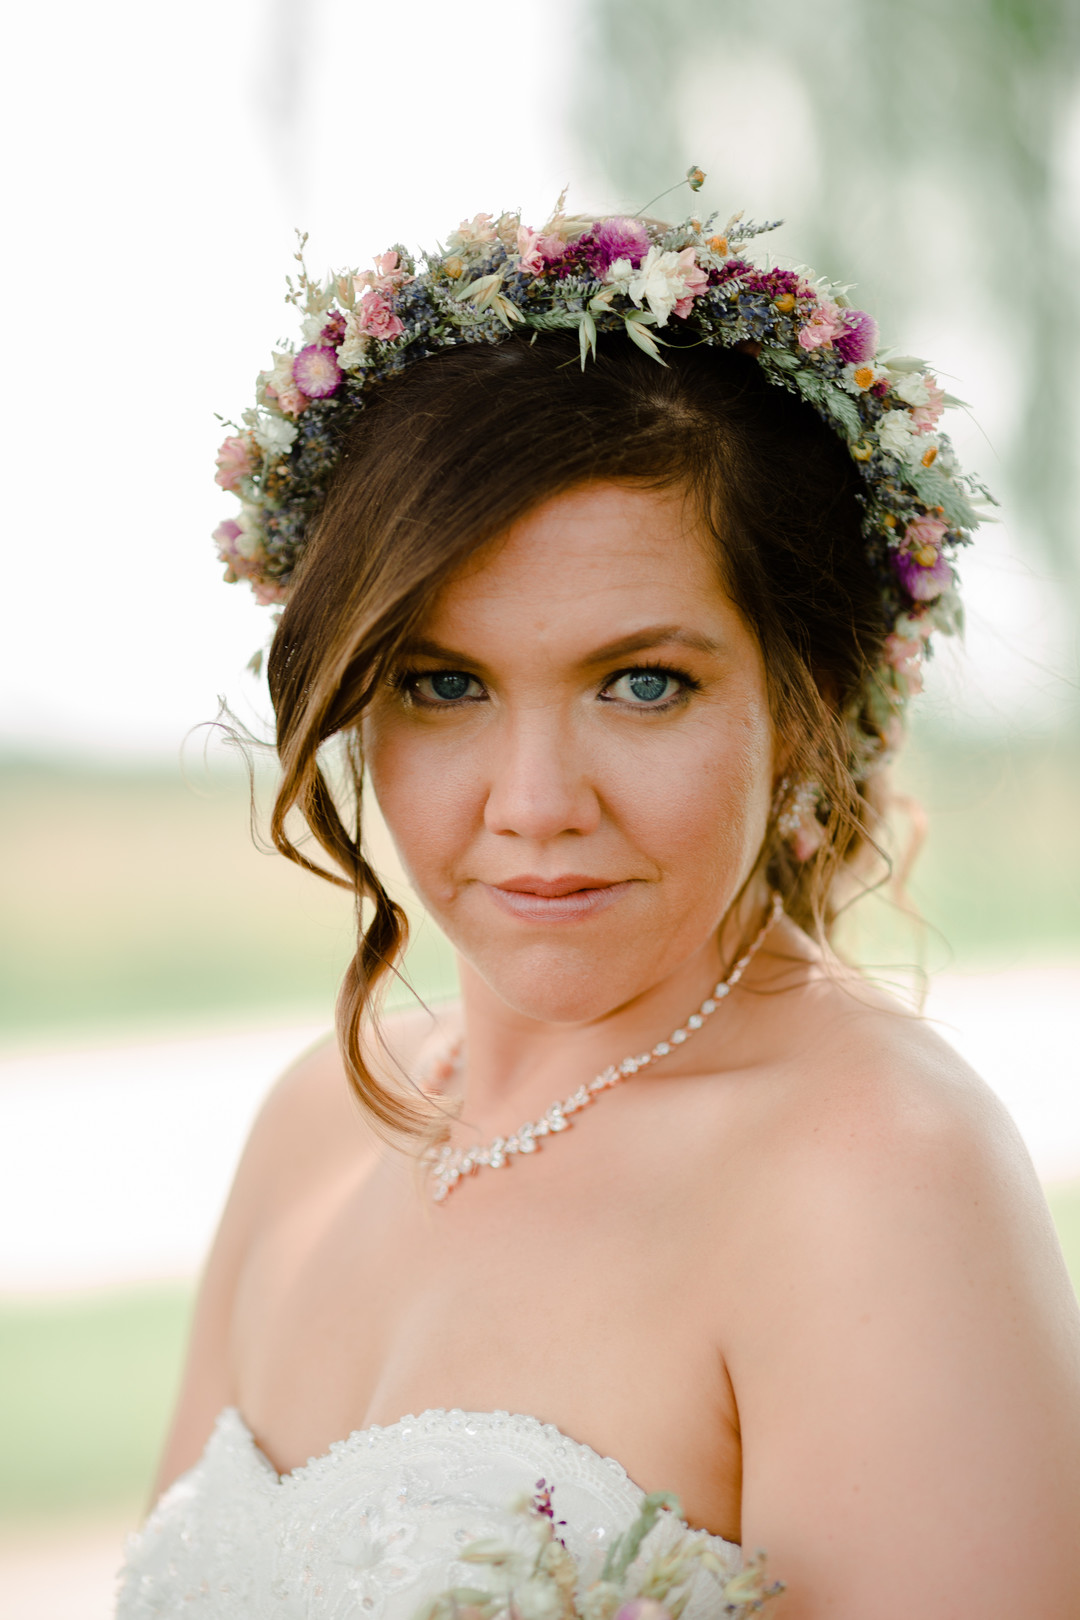 Wedding flower crown: Rustic country wedding in Minooka, IL captured by Katie Brsan Photography. Visit CHItheeWED.com for more wedding inspiration!